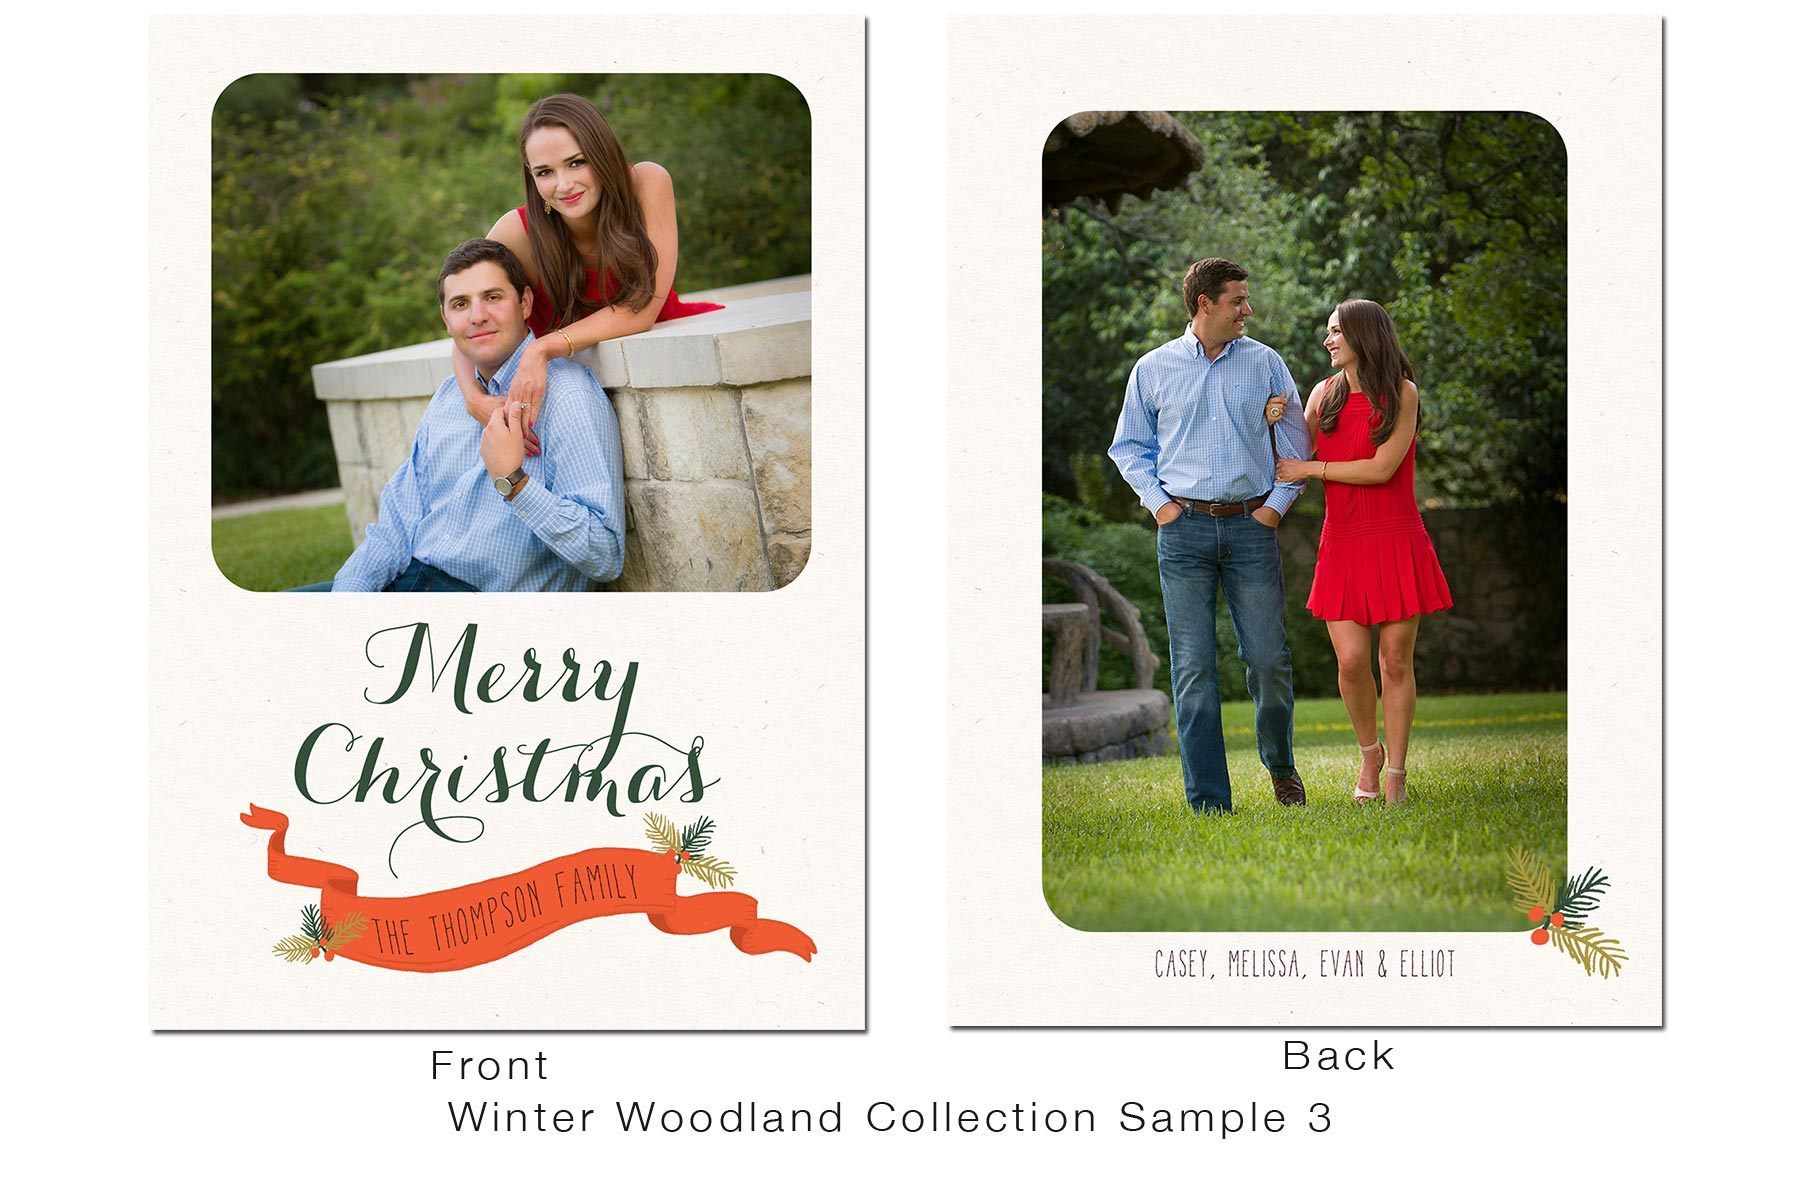 1winter_woodland_collection_sample_3.jpg